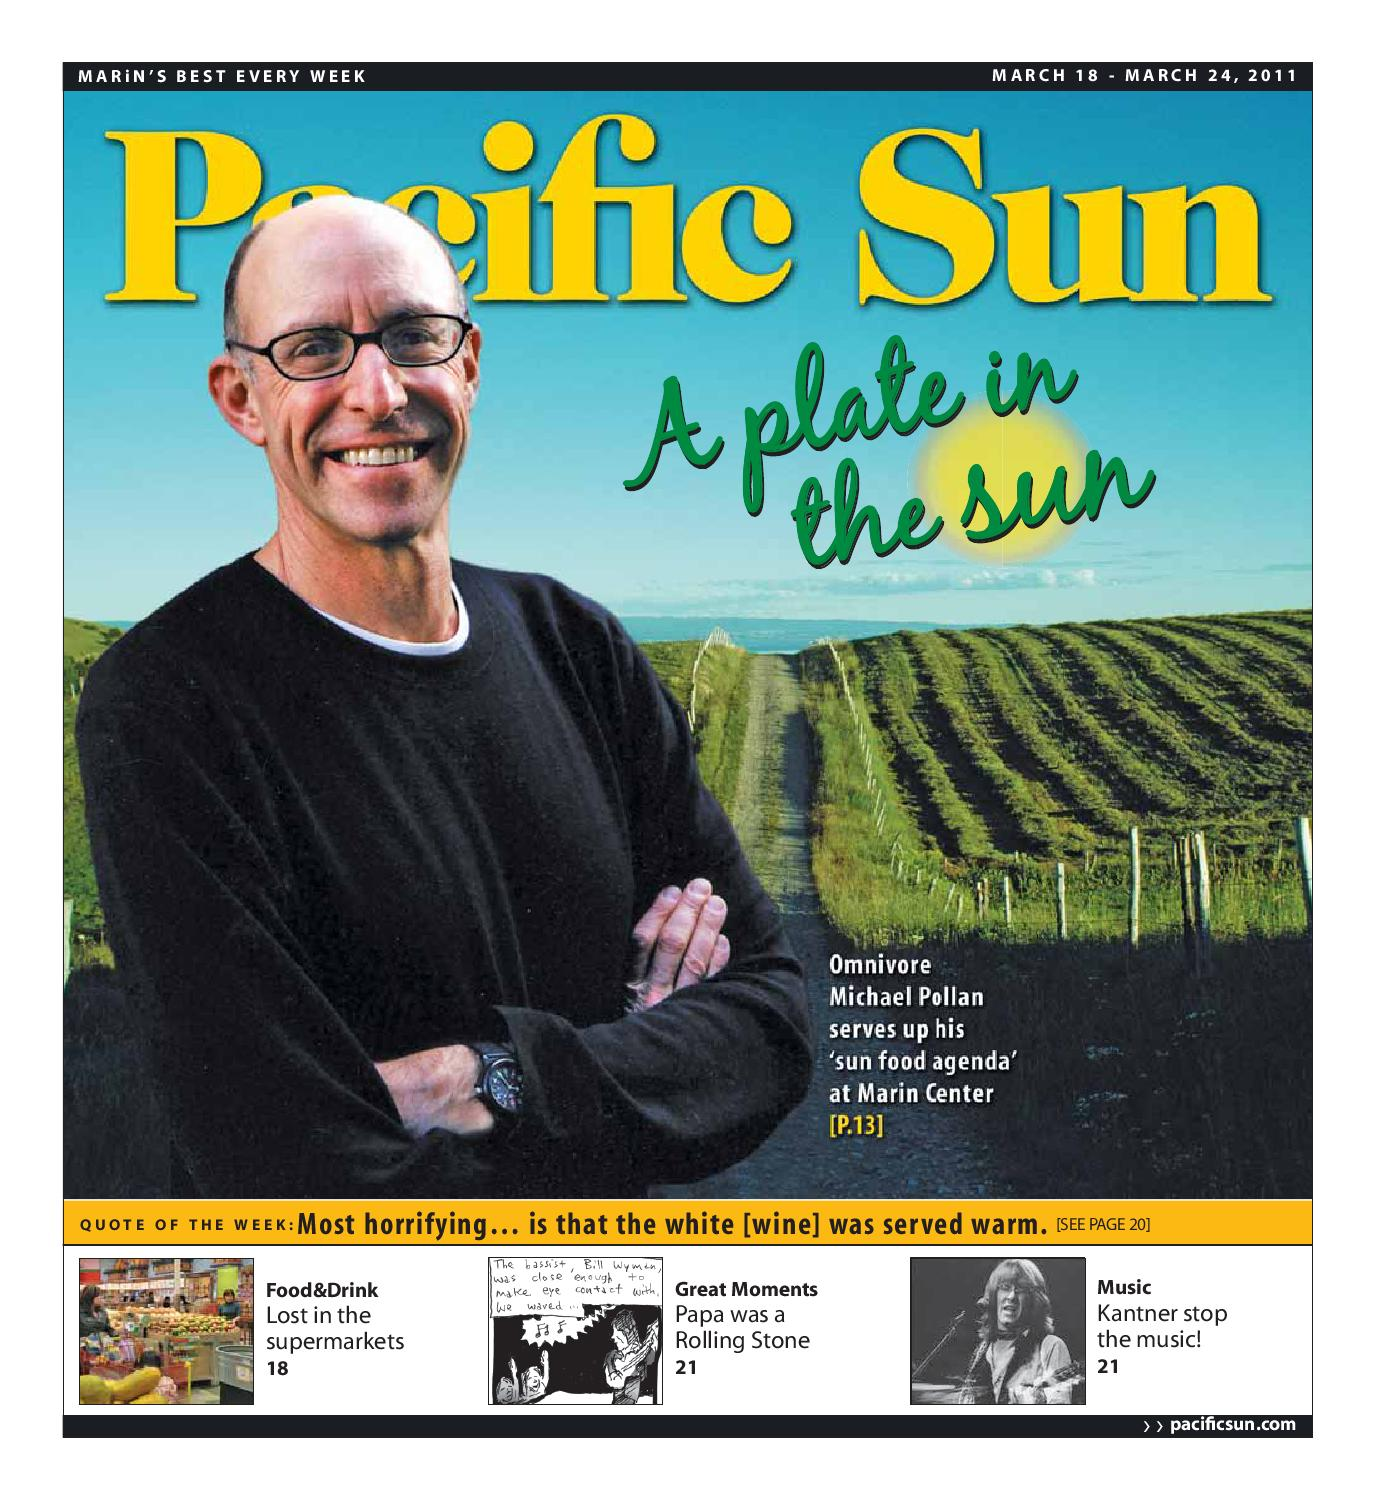 5db72a7f28 Pacific Sun Weekly 03.18.2011 - Section 1 by Pacific Sun - issuu